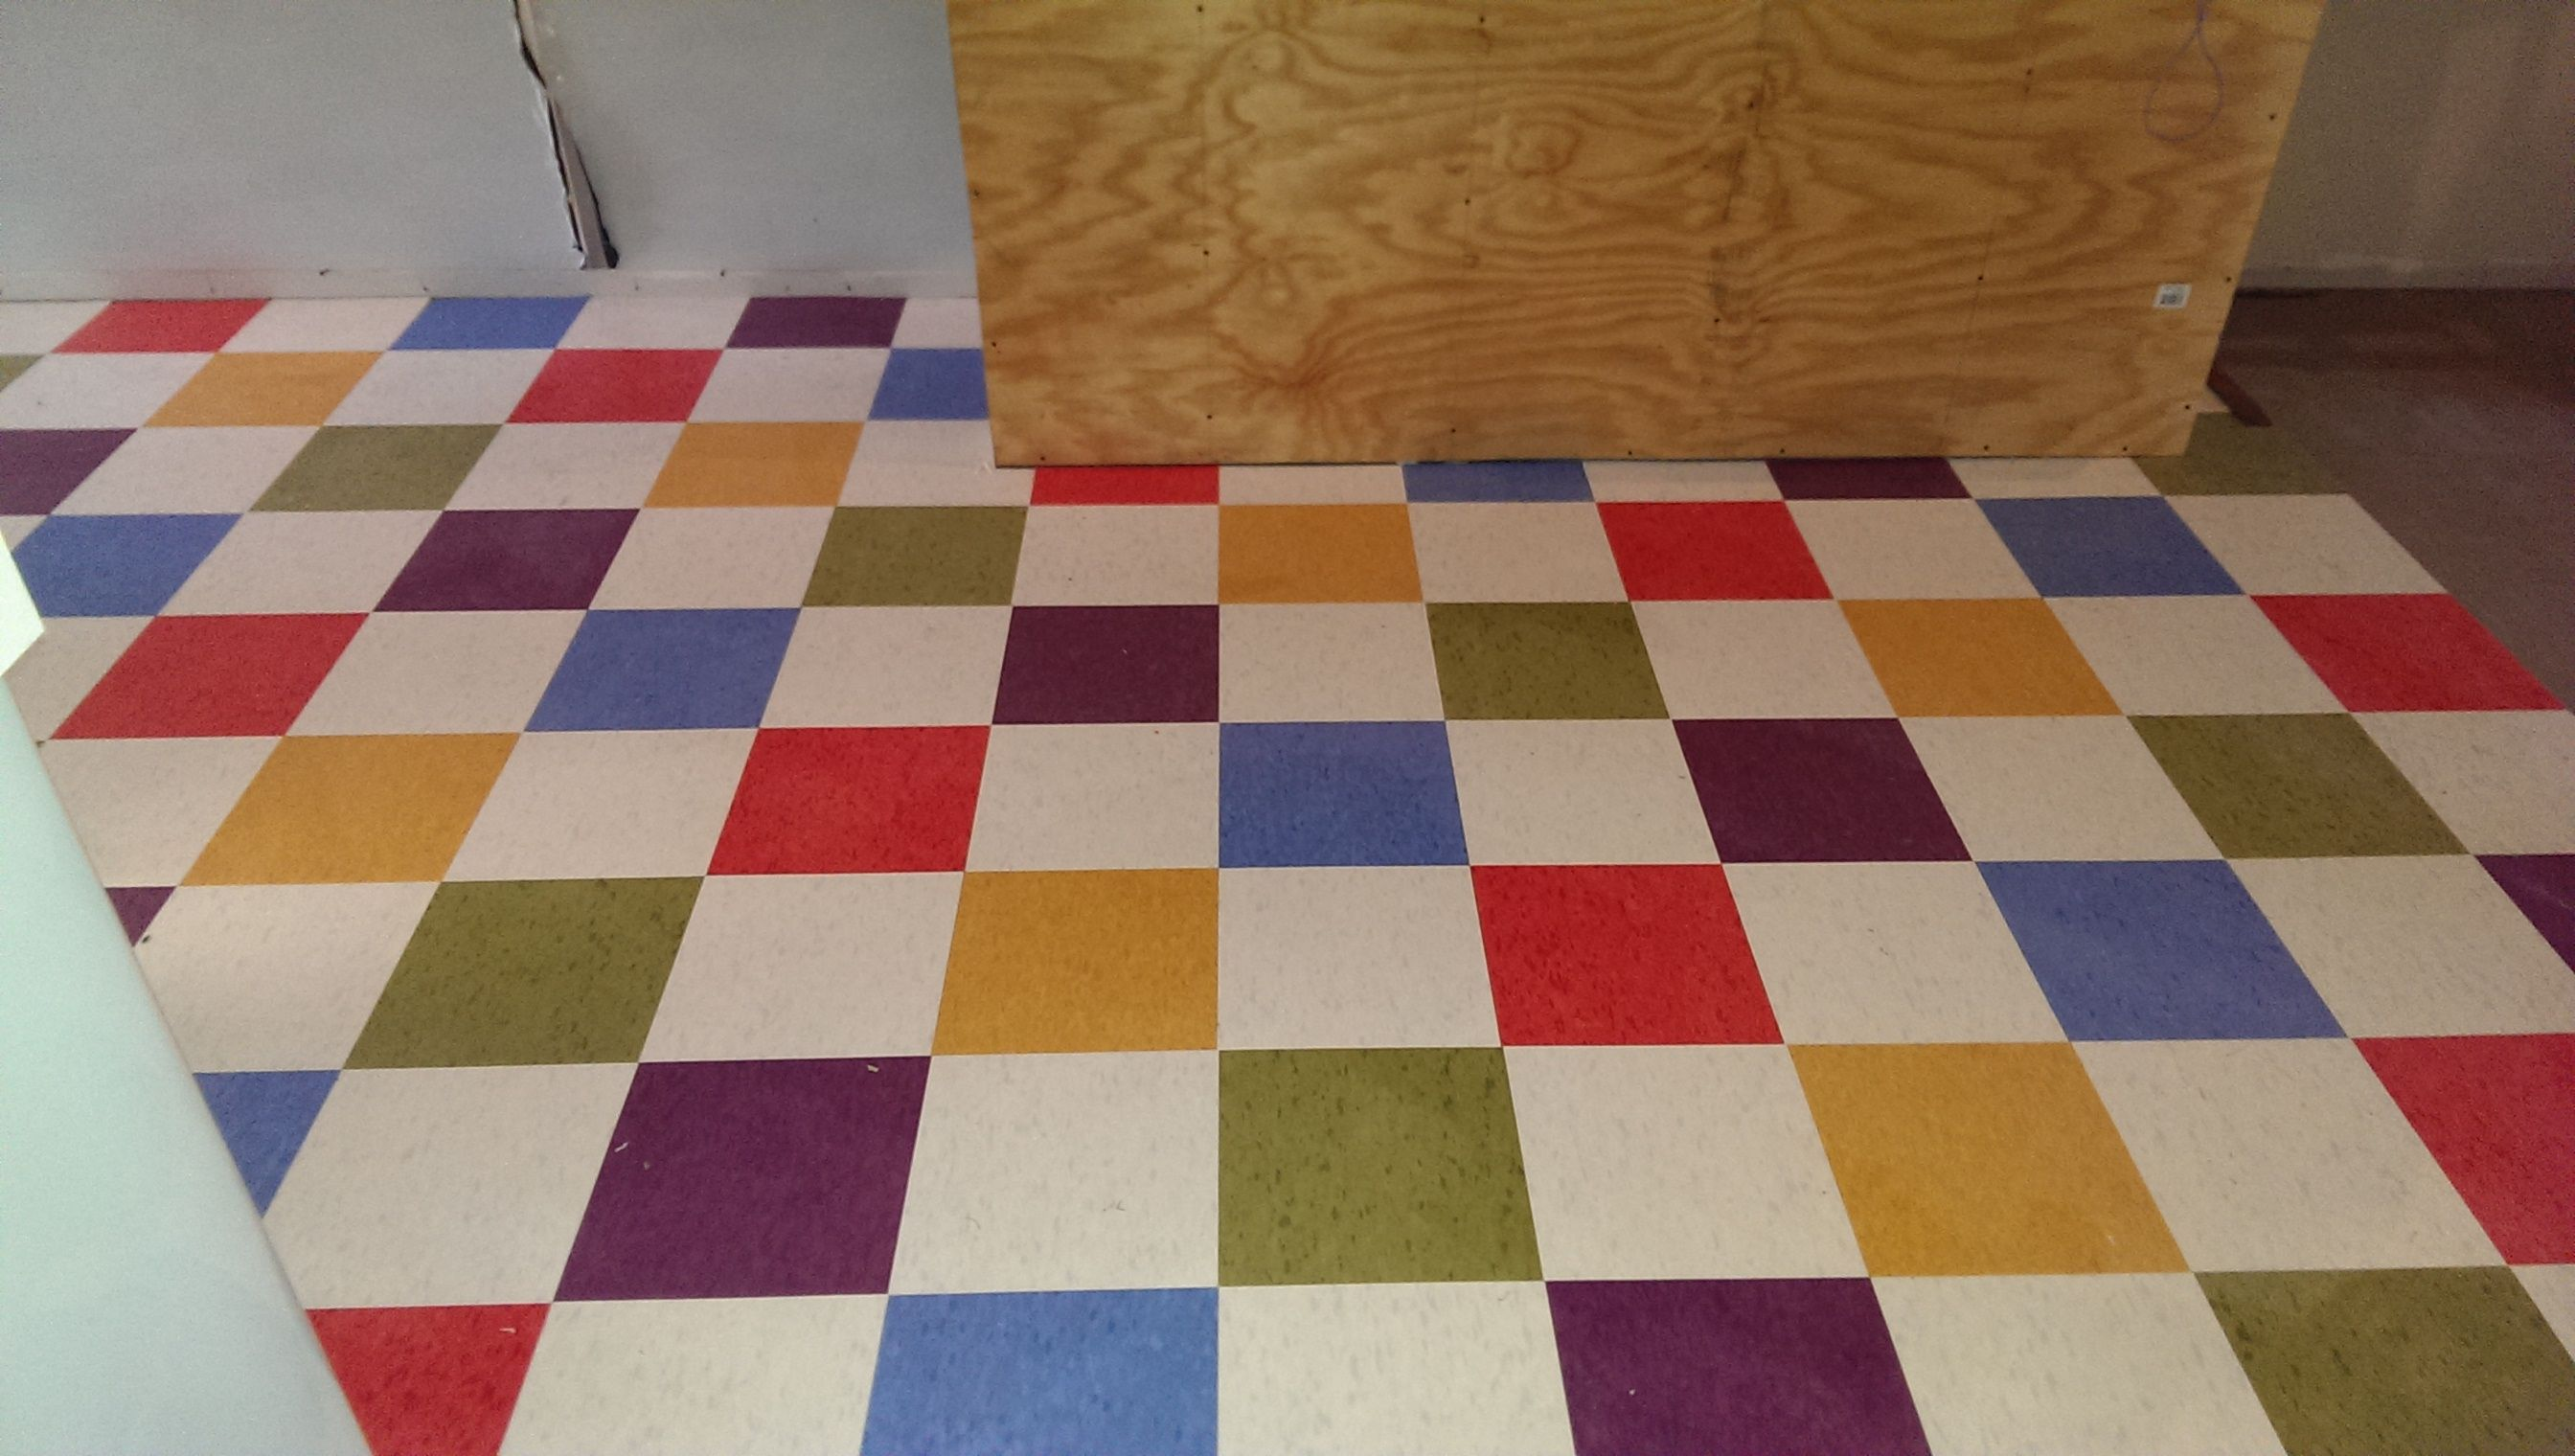 Marvelous vct tile for home flooring ideas glamorous vct tile marvelous vct tile for home flooring ideas glamorous vct tile pattern with rattan chair and dailygadgetfo Image collections